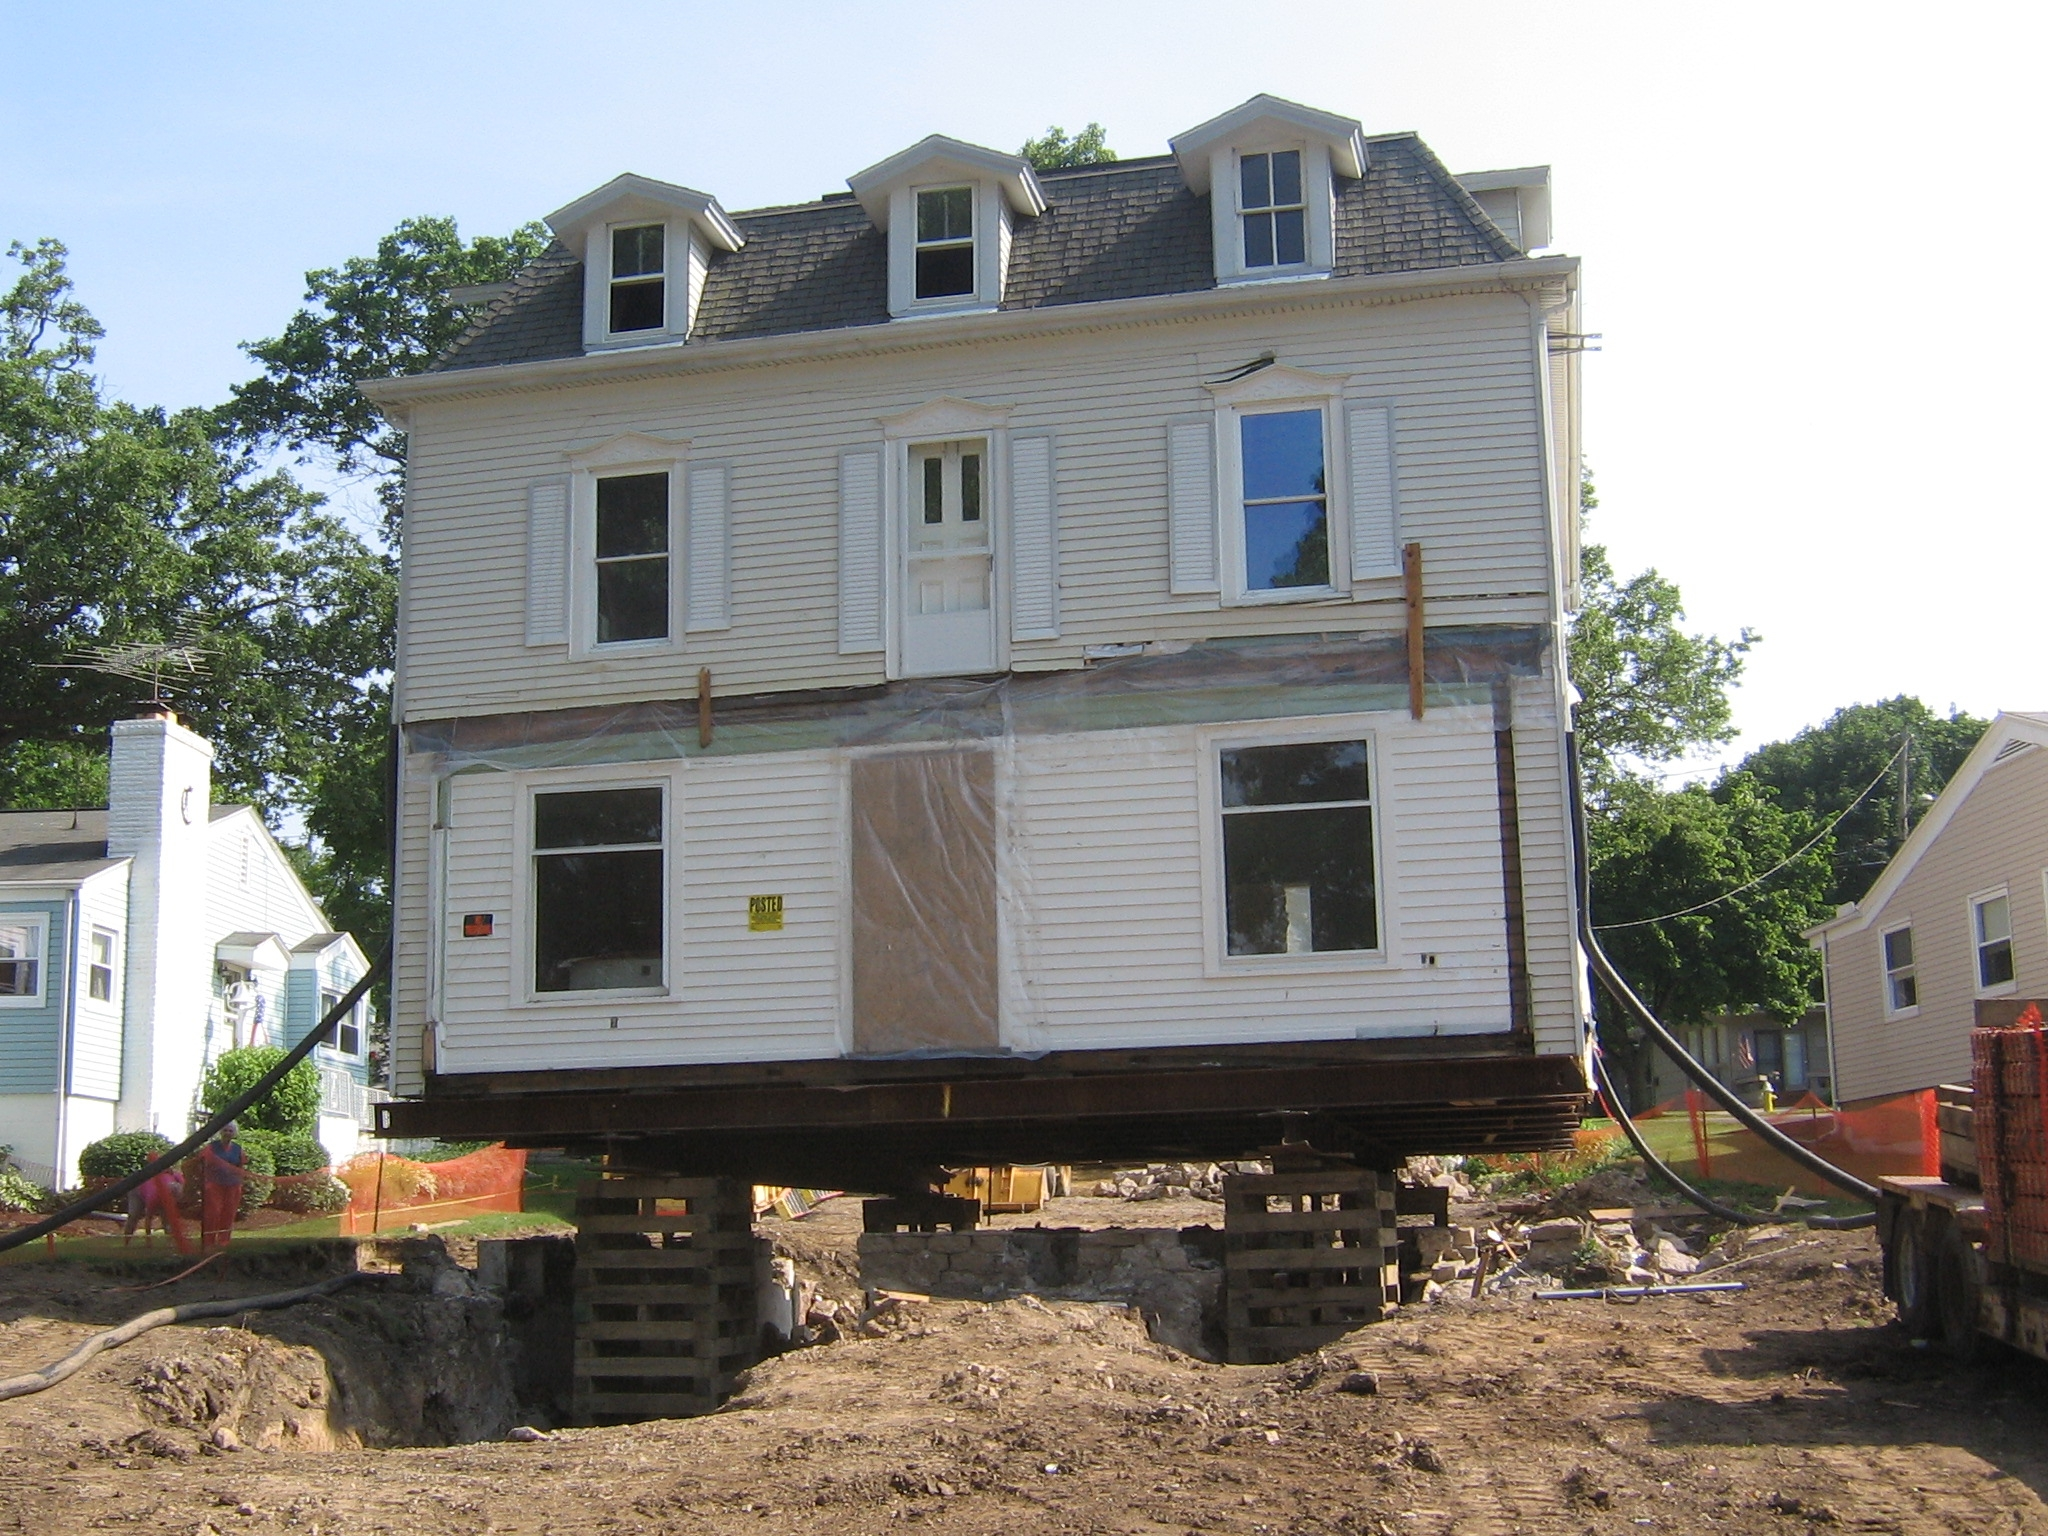 Basement Construction Under Existing House Basement Construction Under Existing House can you build a basement under a house best basement 2017 2048 X 1536